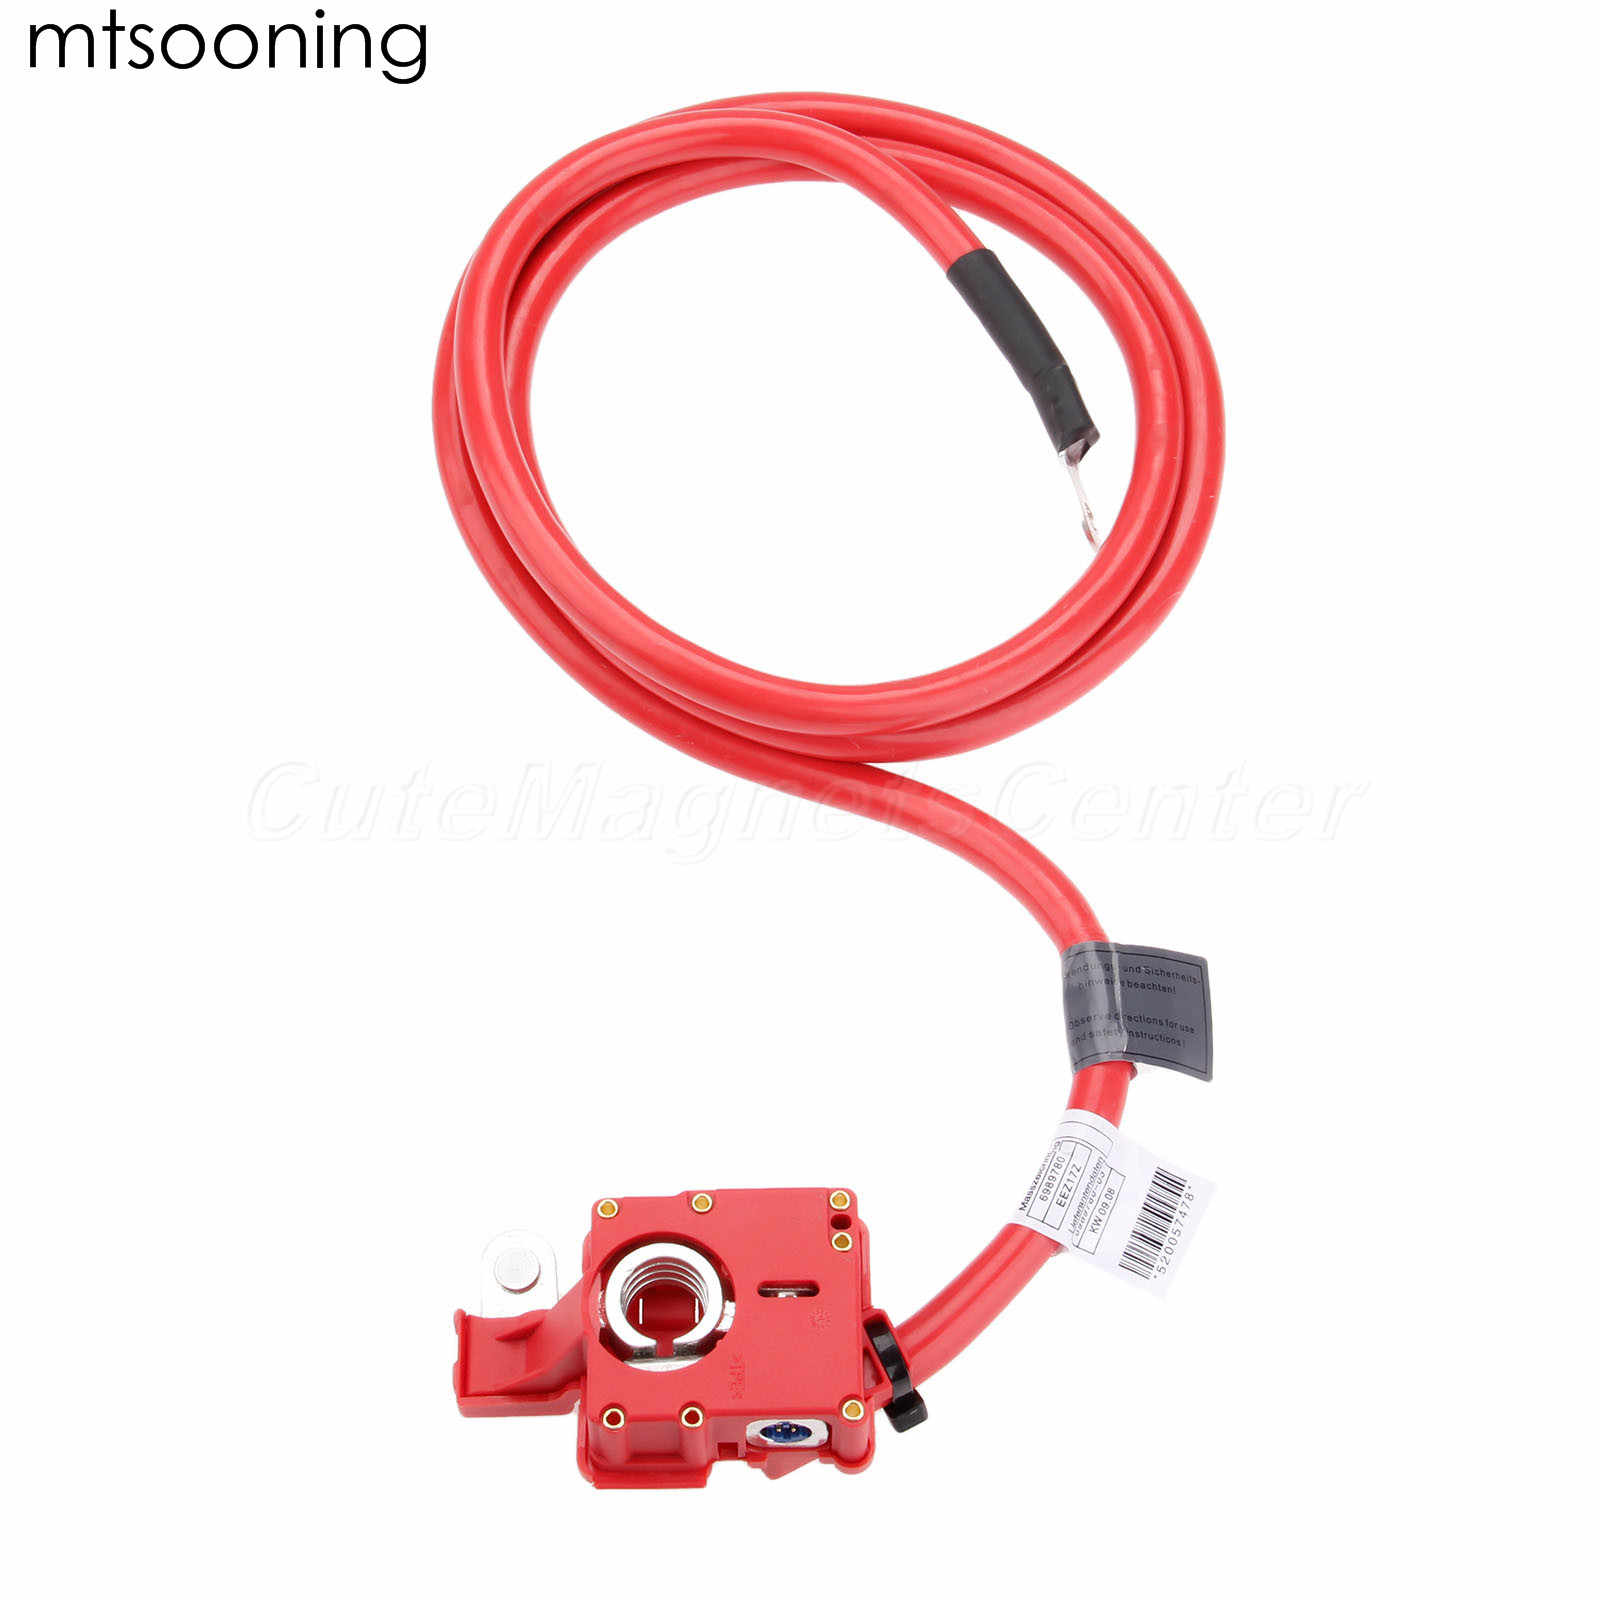 Mtsooning Positive Battery Cable 61126989780 For Bmw 525xi 528i 530i 535xi Xdrive 530xi 550i